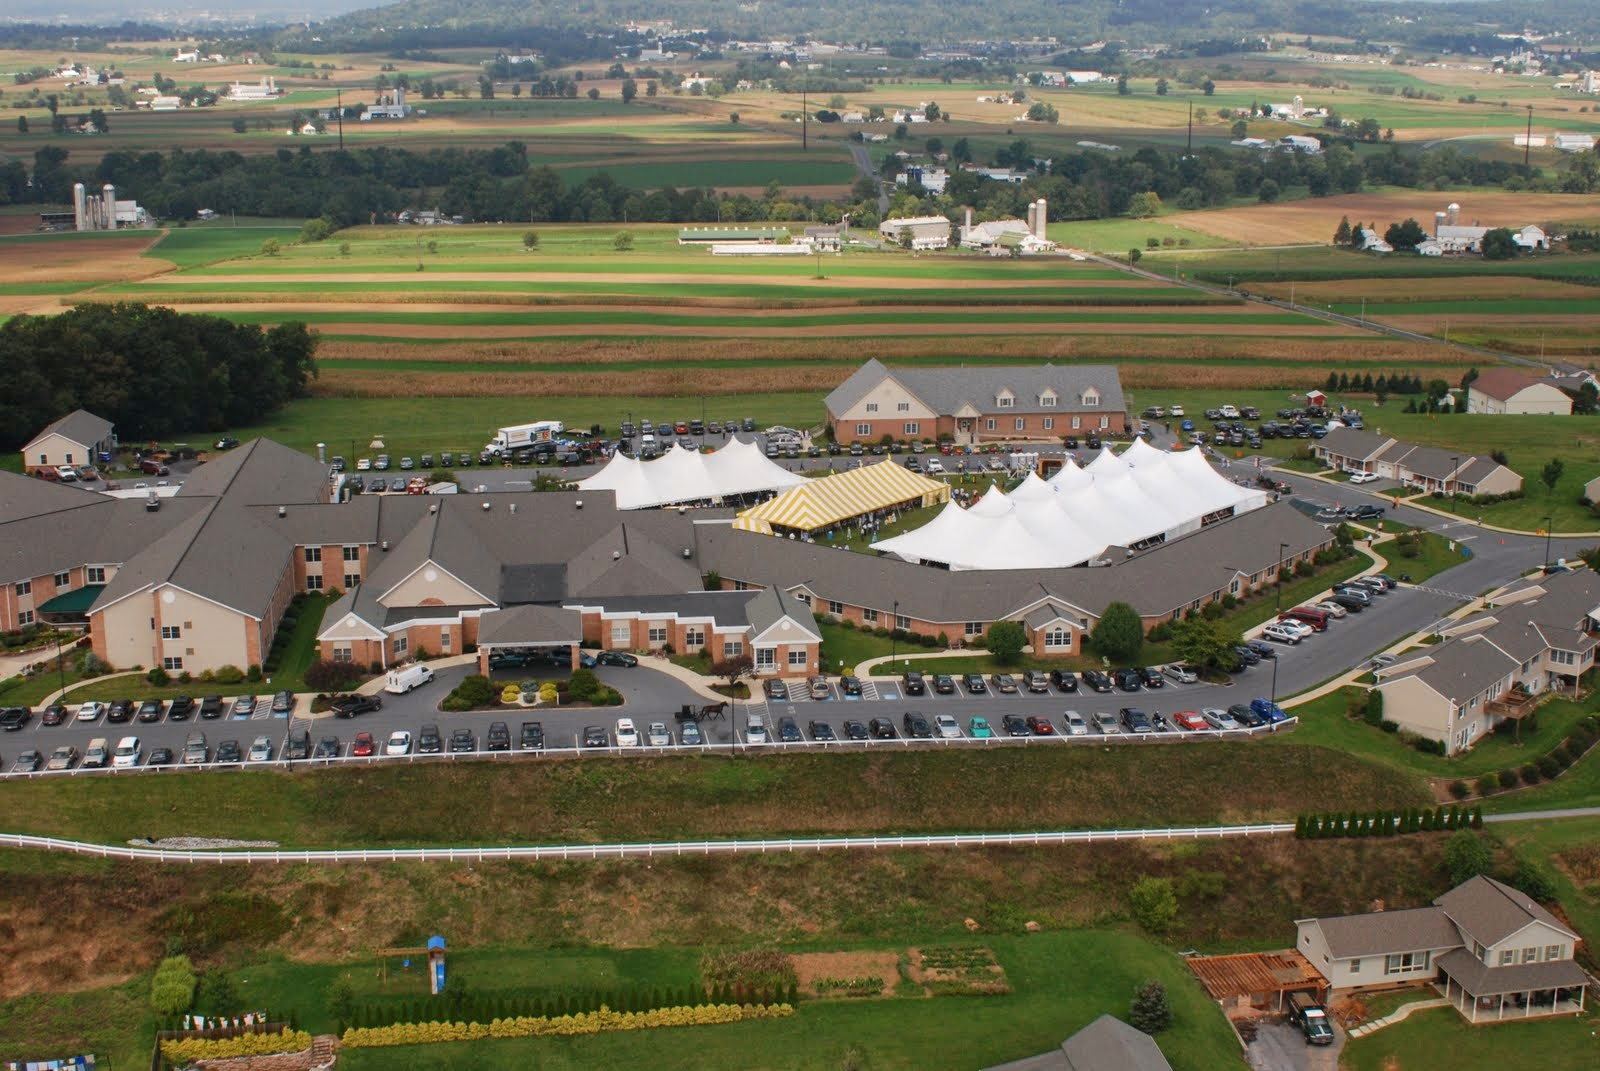 View of Wheat Ridge campus from a helicopter on the annual Benefit Auction and Chicken Barbecue day